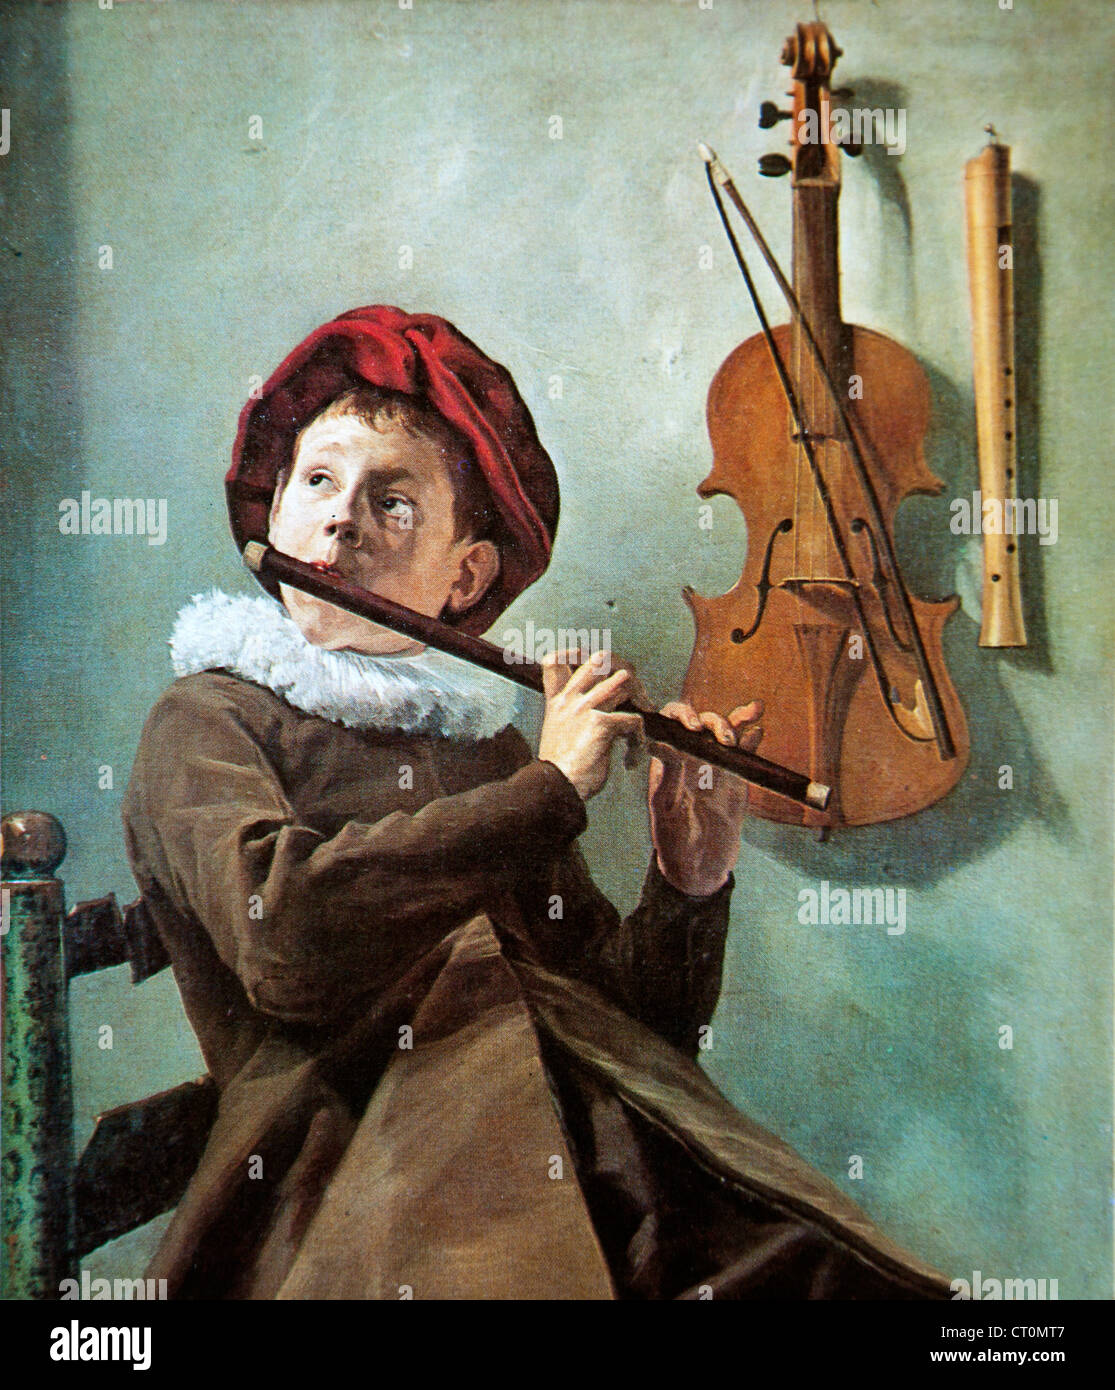 A Boy Playing a Flute – Judith Leyster Stock Photo: 49188839